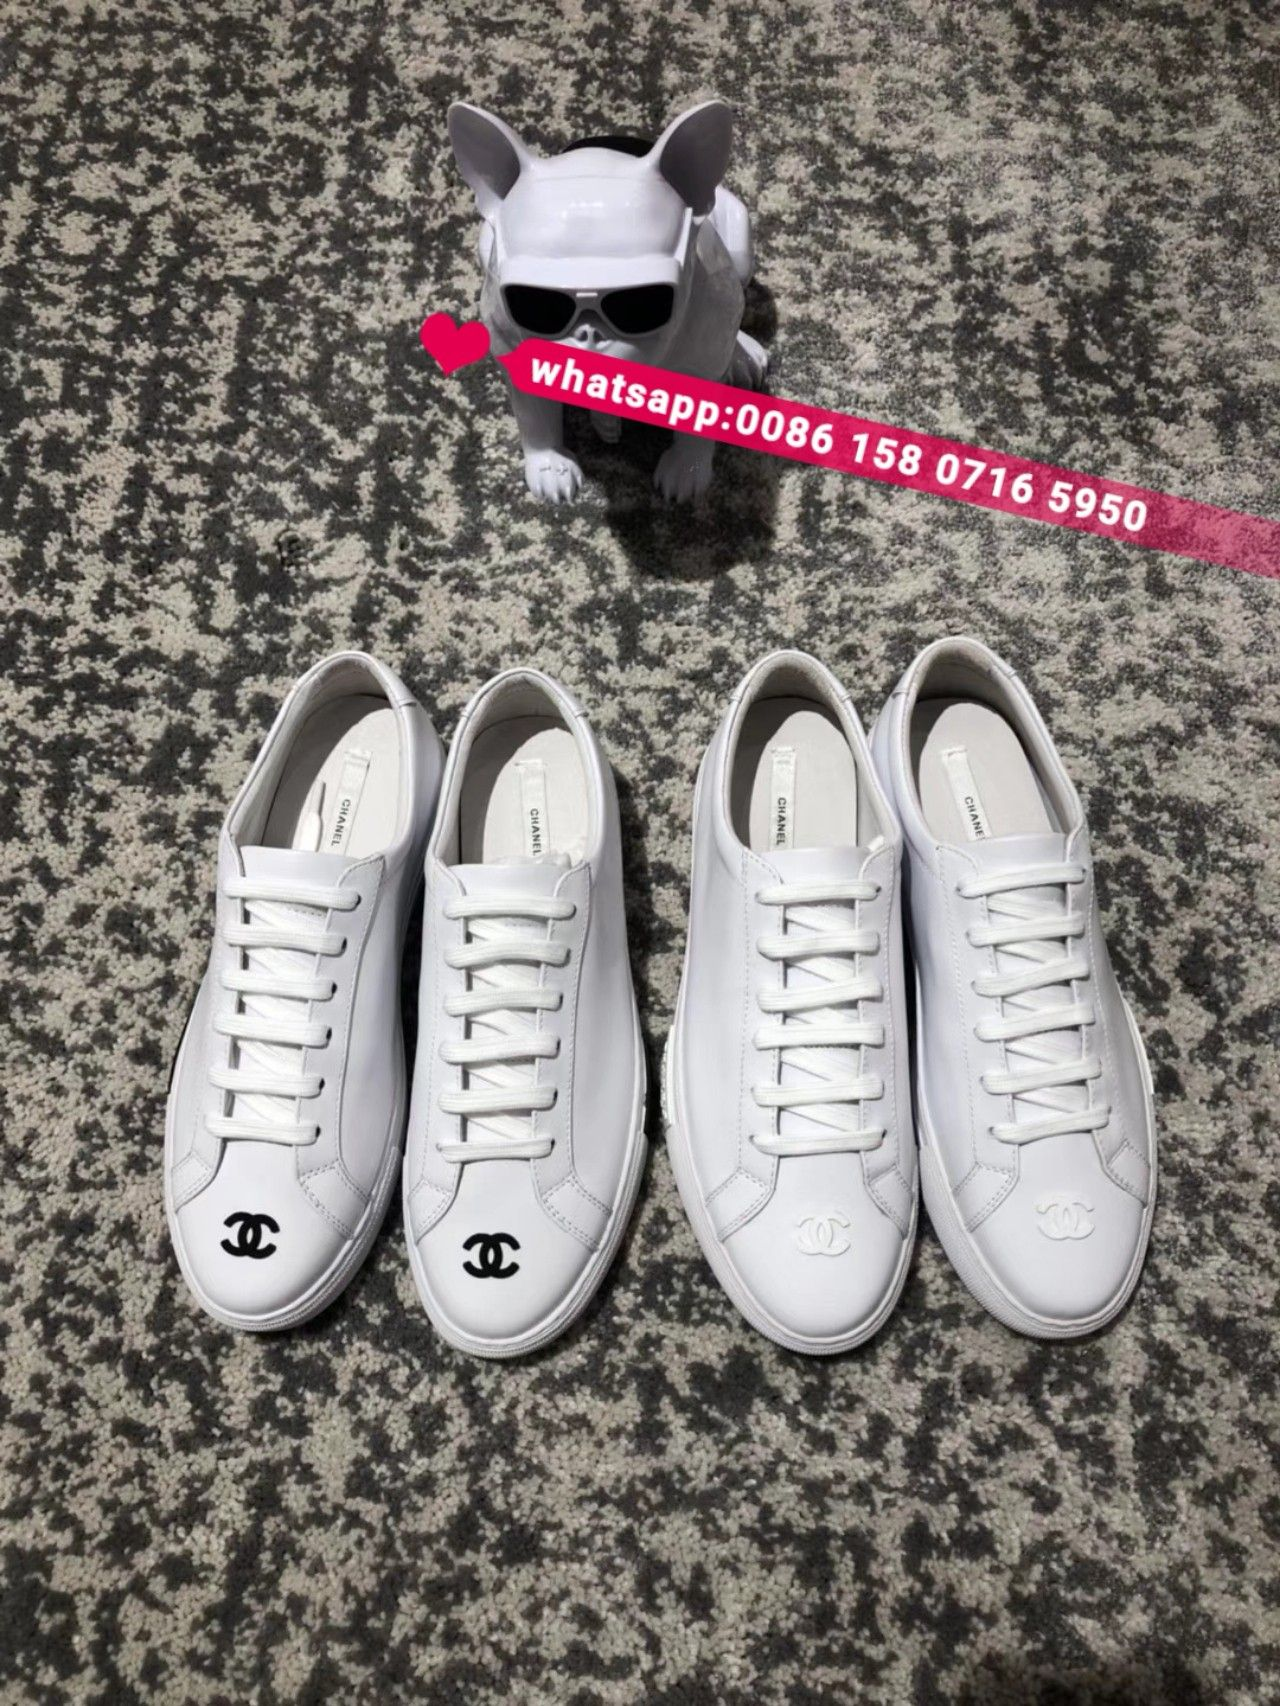 2019 new Chanel sneakers trainers woman